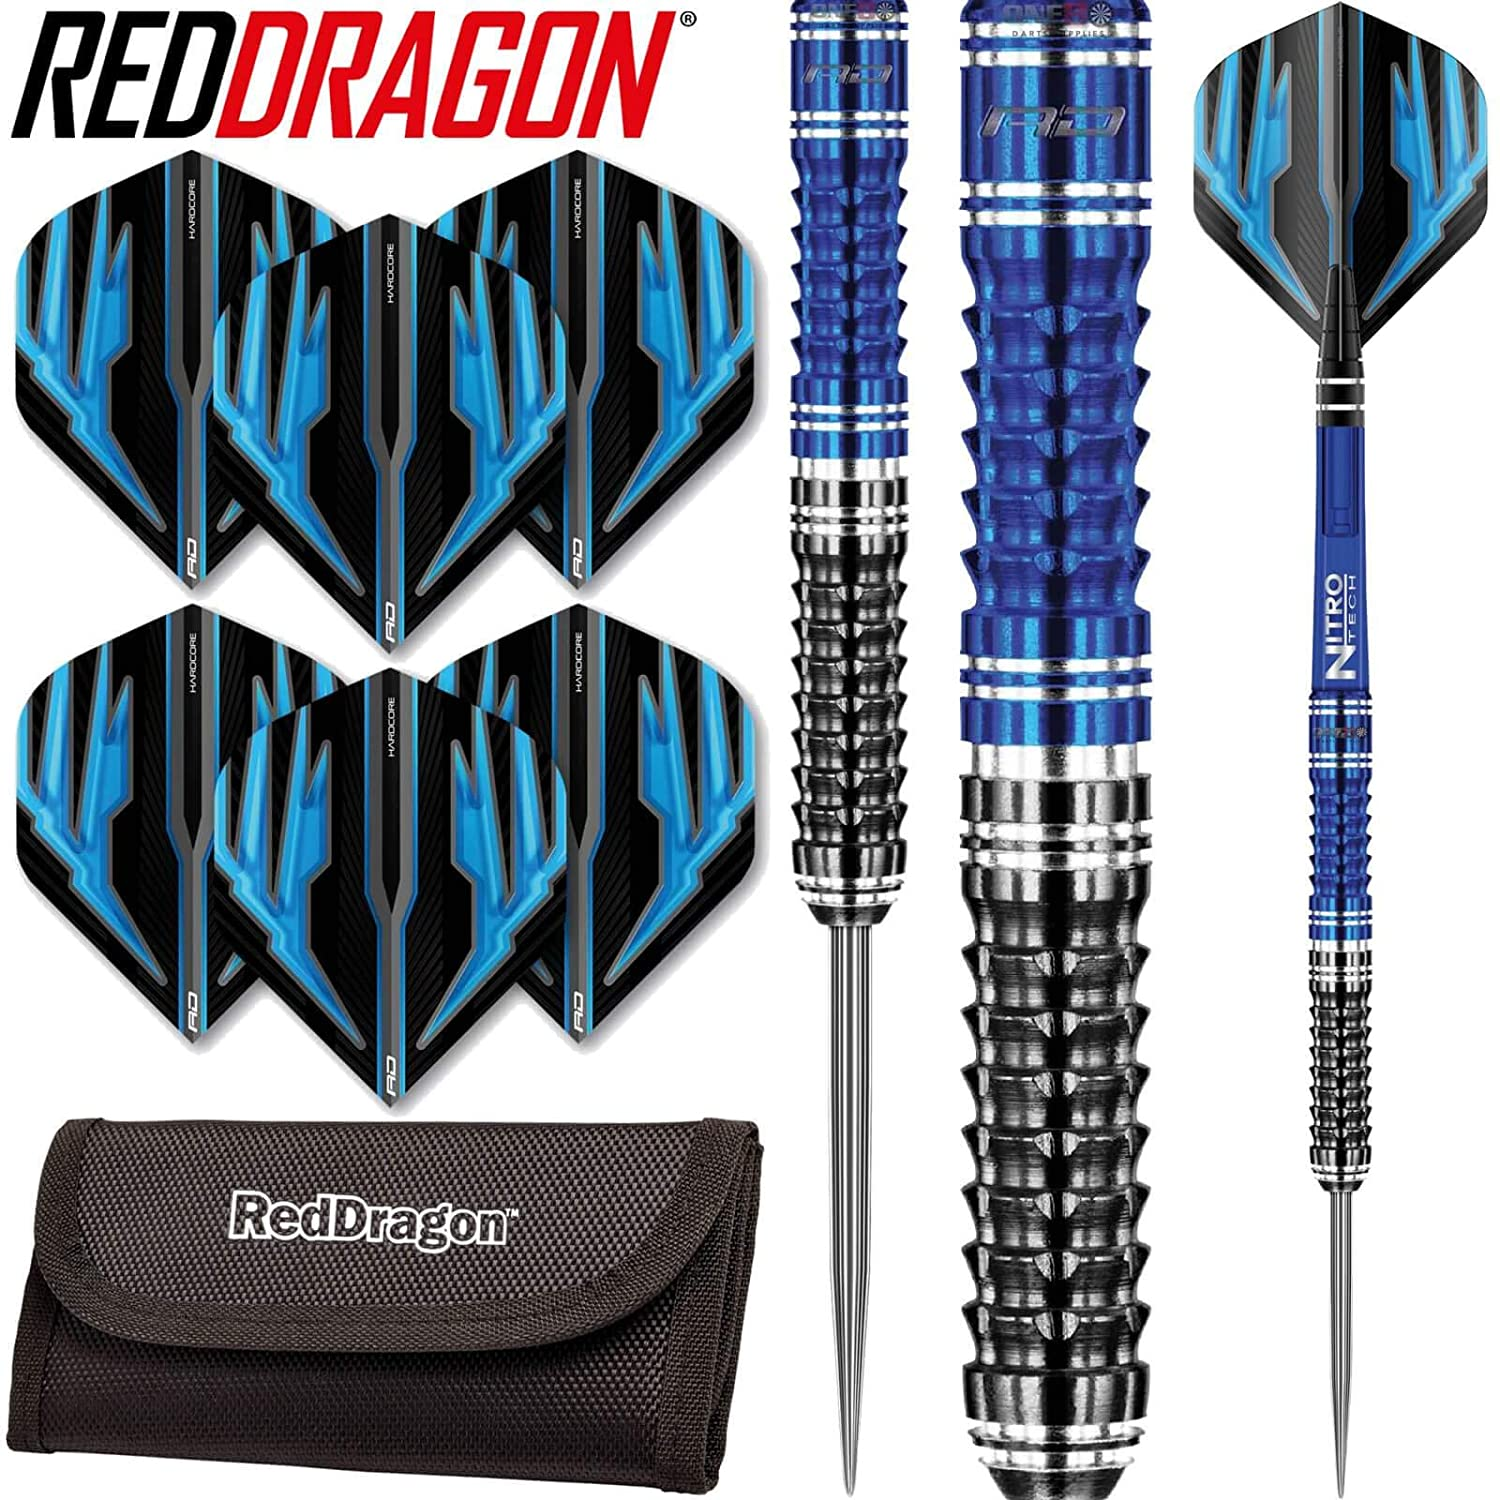 Shafts /& Wallet /& Red Dragon Checkout Card Red Dragon Delta 1-90/% Tungsten Steel Darts with Flights